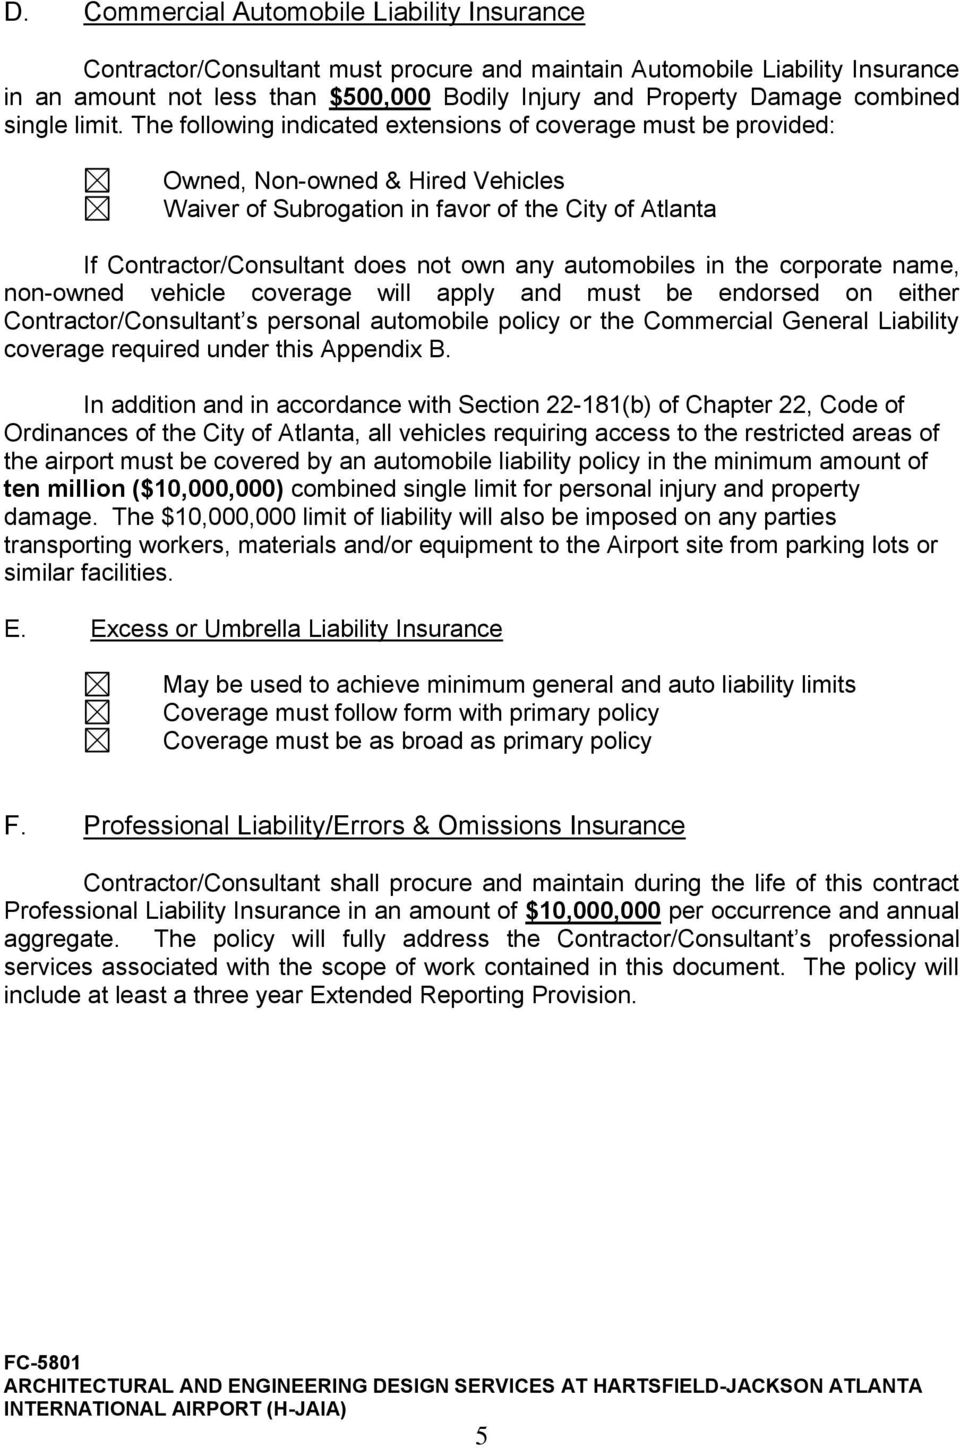 The following indicated extensions of coverage must be provided: Owned, Non-owned & Hired Vehicles Waiver of Subrogation in favor of the City of Atlanta If Contractor/Consultant does not own any